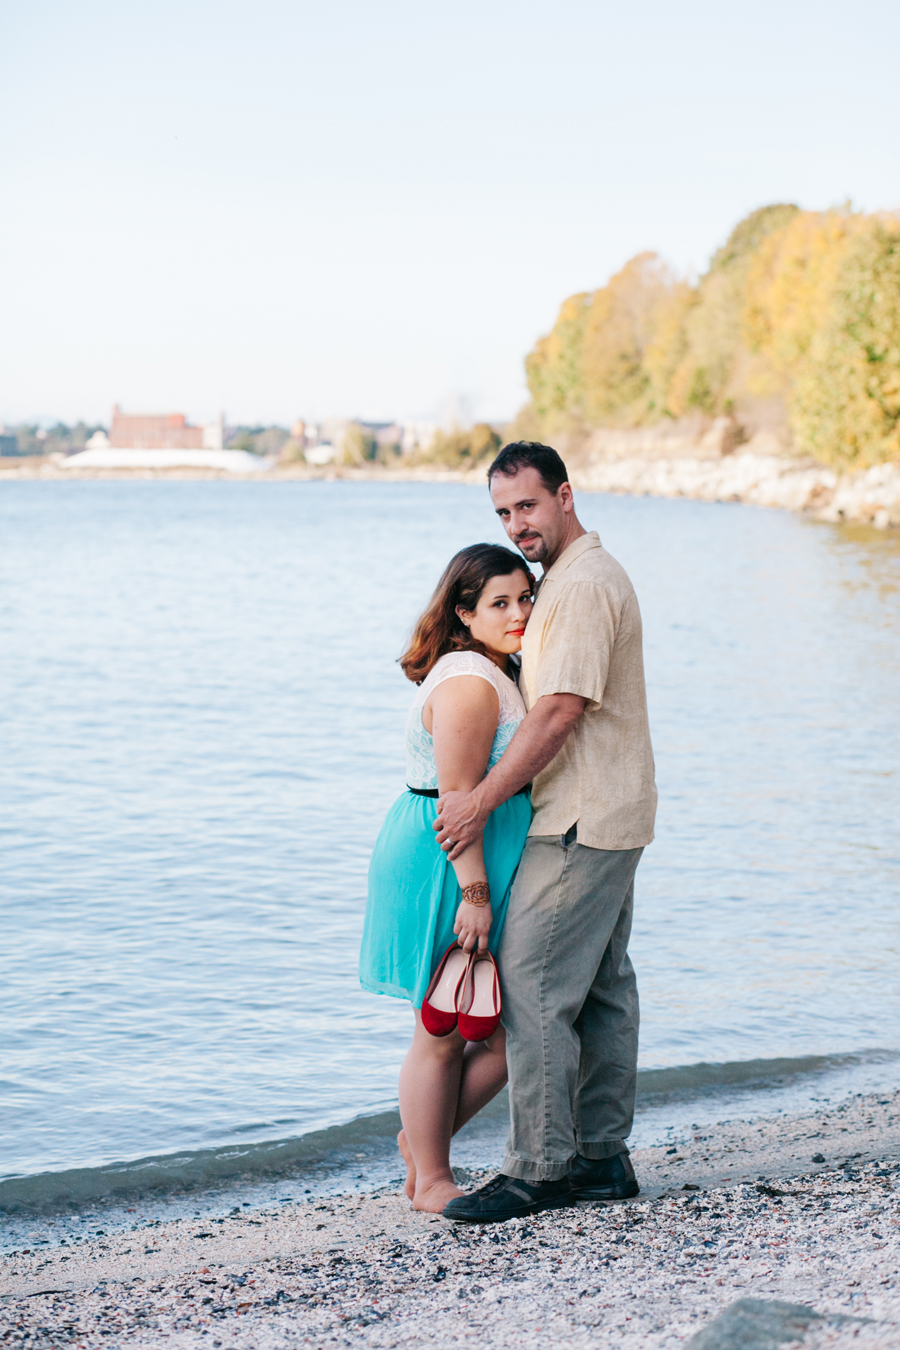 012-bellingham-engagement-photographer-katheryn-moran-photography-boulevard-park.jpg